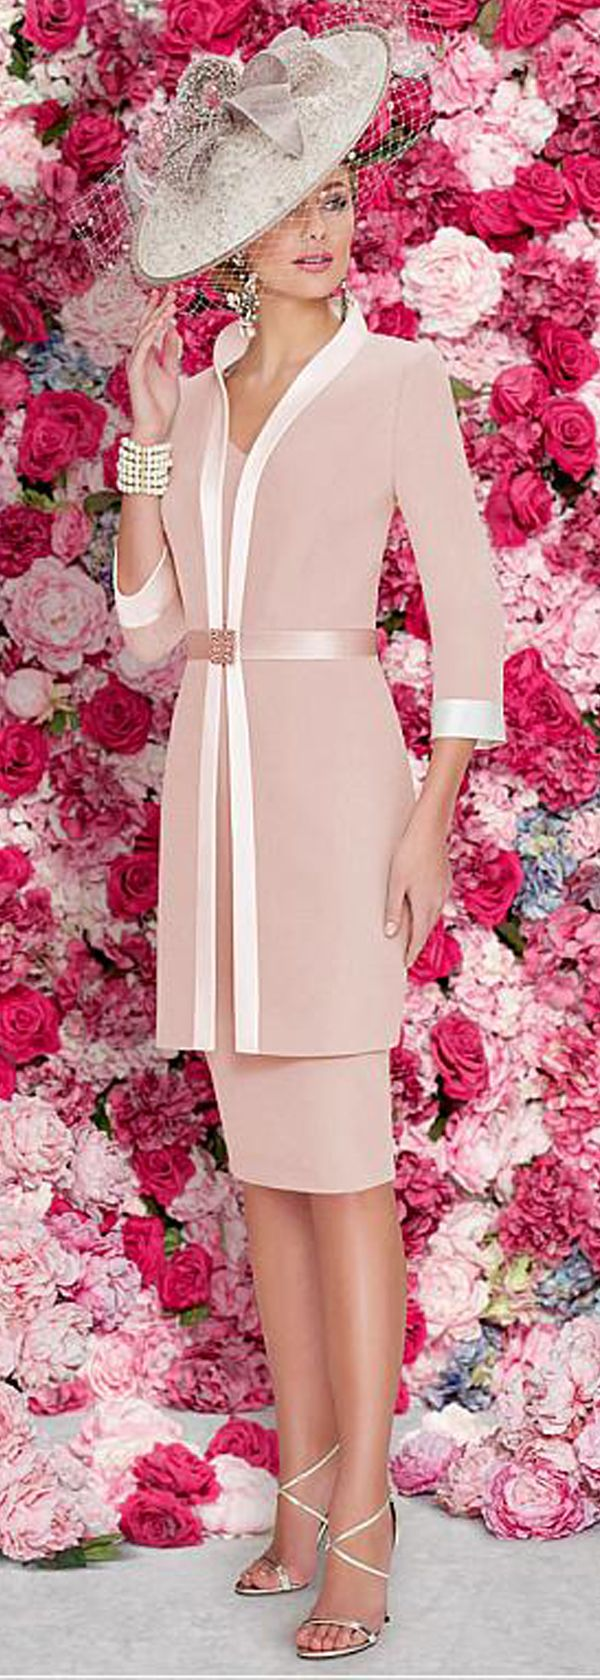 Exquisite Satin High Collar Neckline 3/4 Length Sleeves Sheath/Column Mother Of The Bride Dresses With Detachable Coat & Beadings